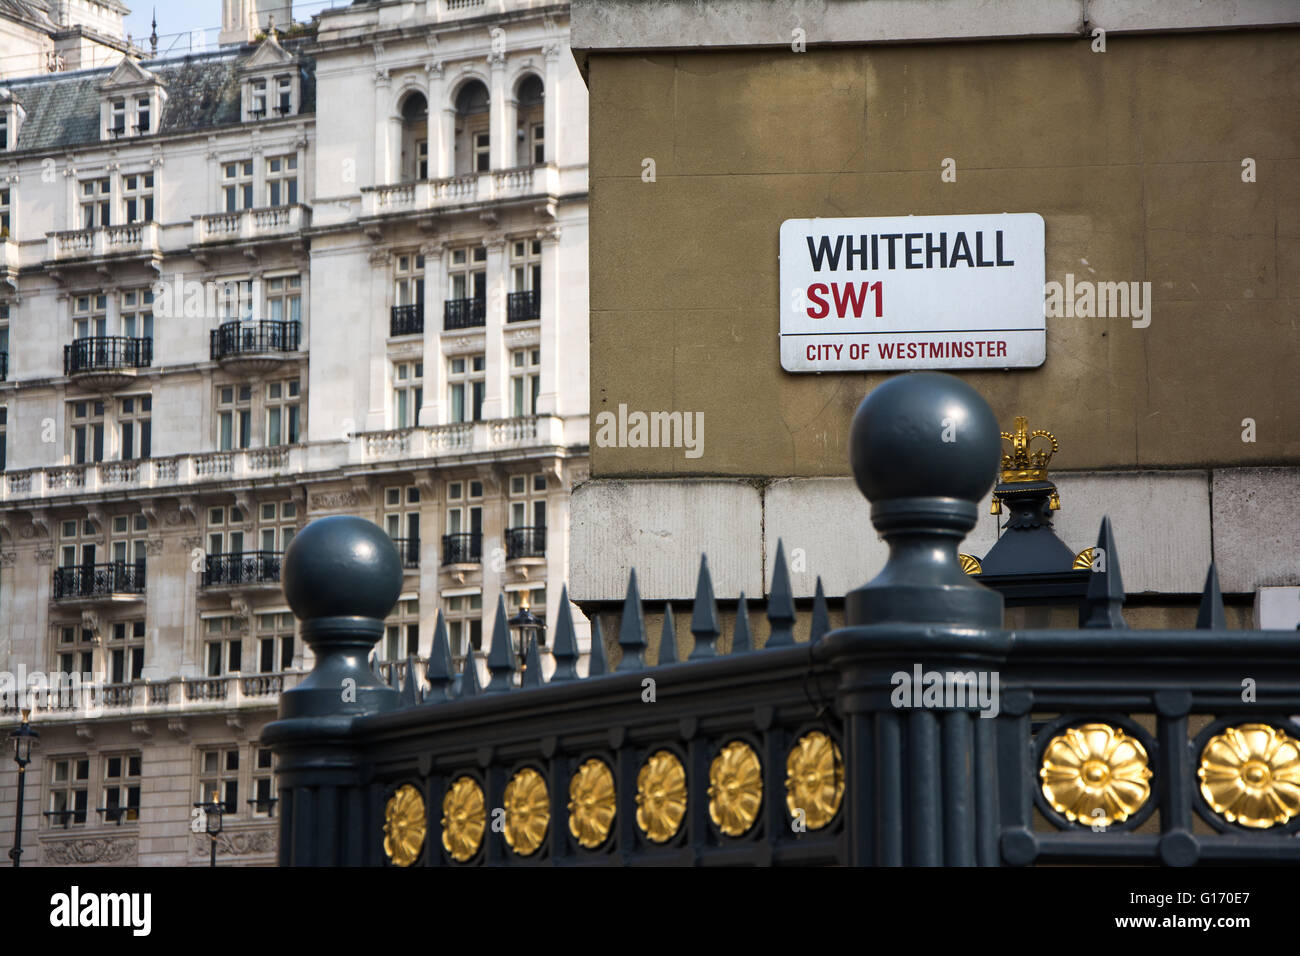 Whitehall sign and buildings, Westminster, London, England - Stock Image